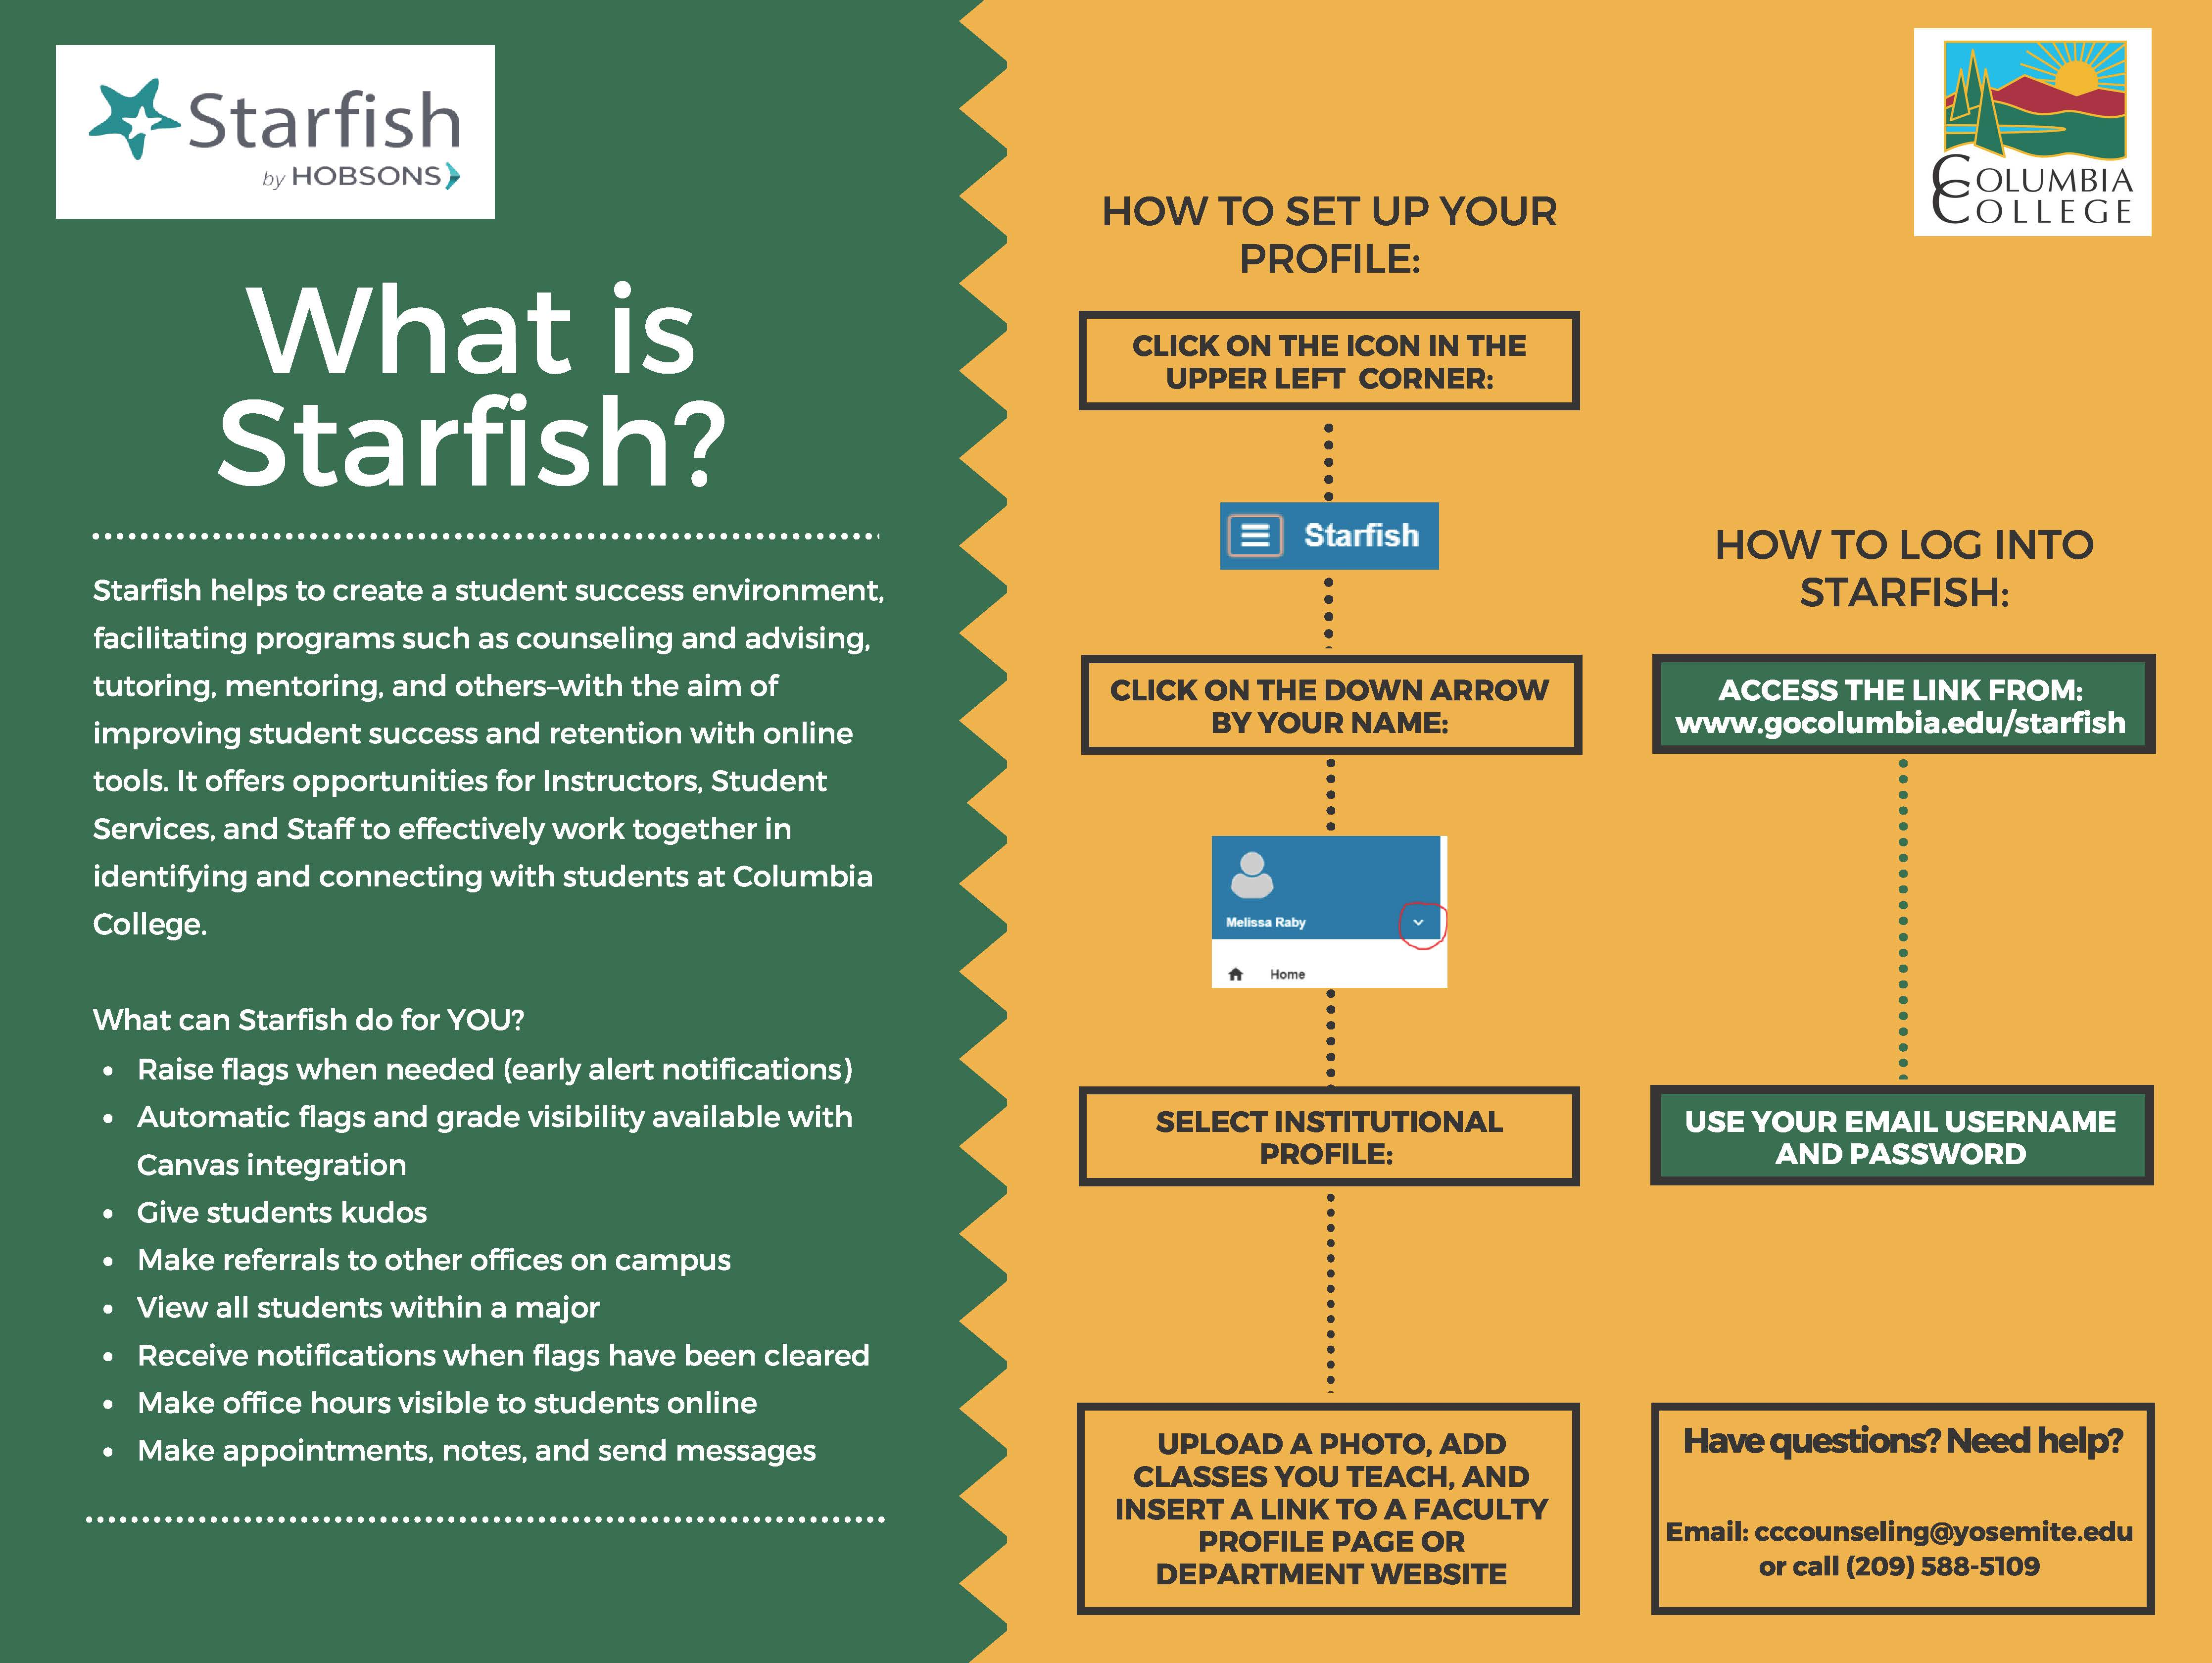 starfish log in and profile info